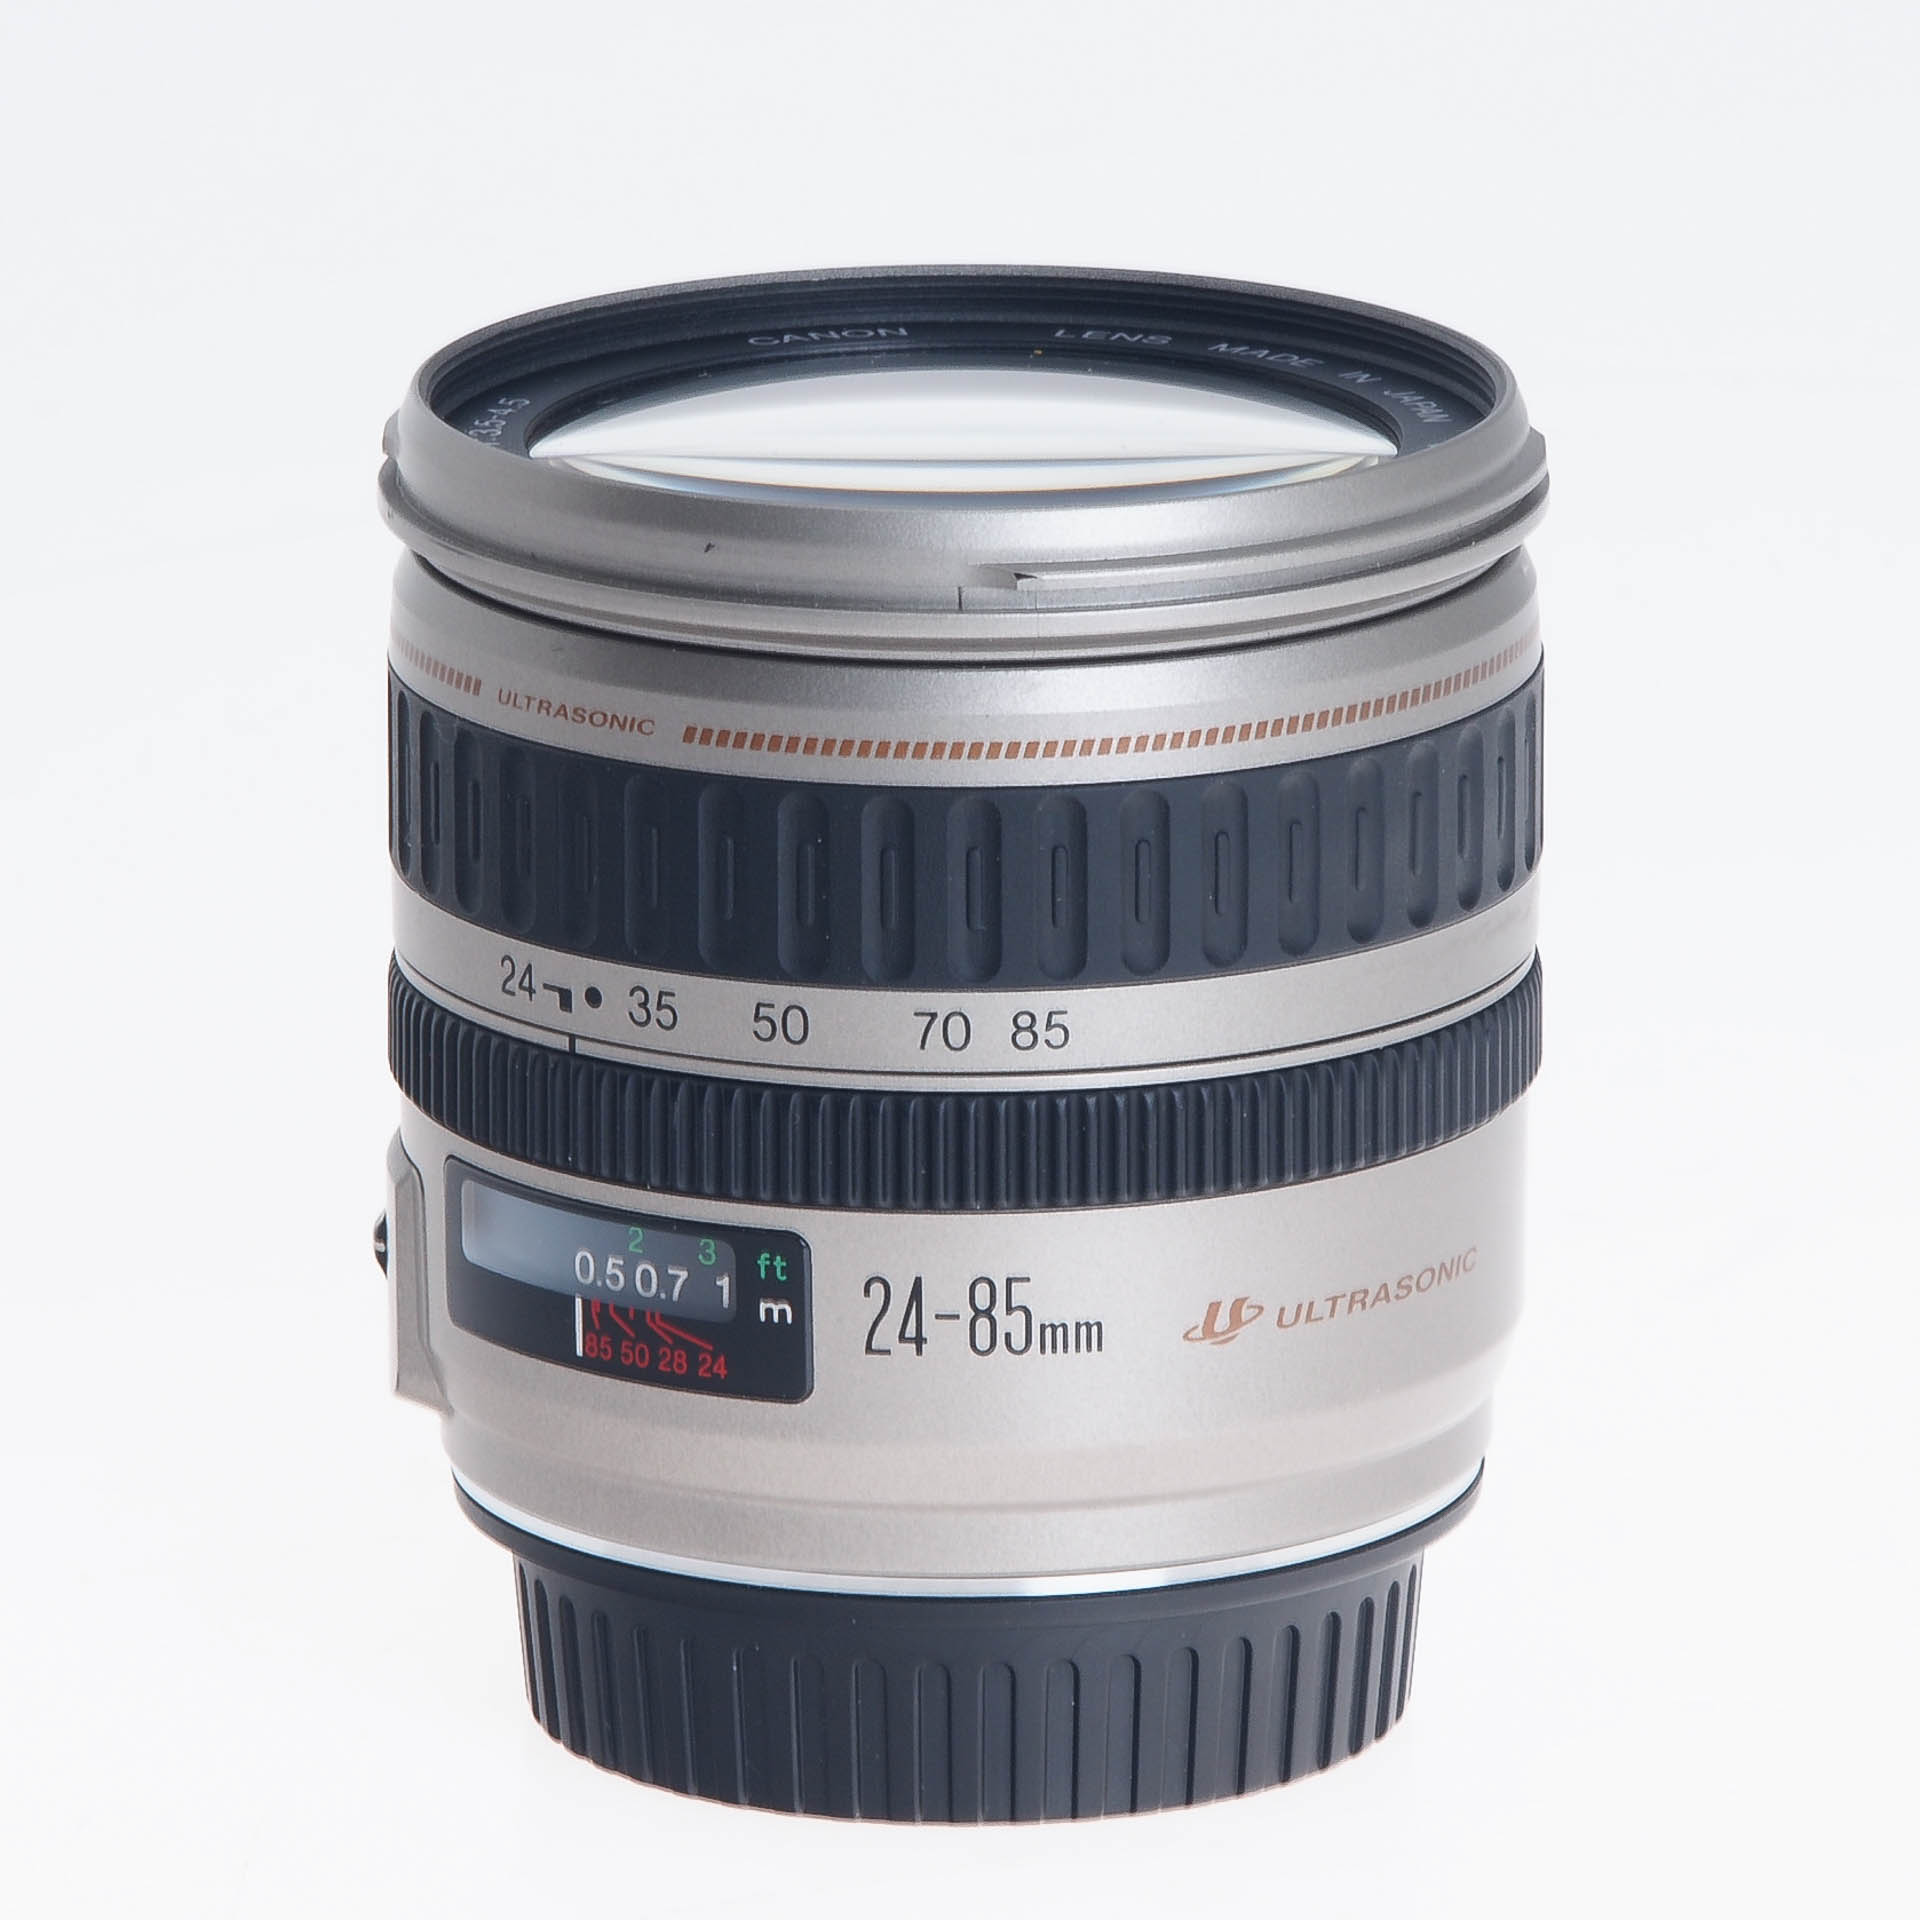 Canon EF 24-85mm f3.5-4.5 USM Lens Review and Specs